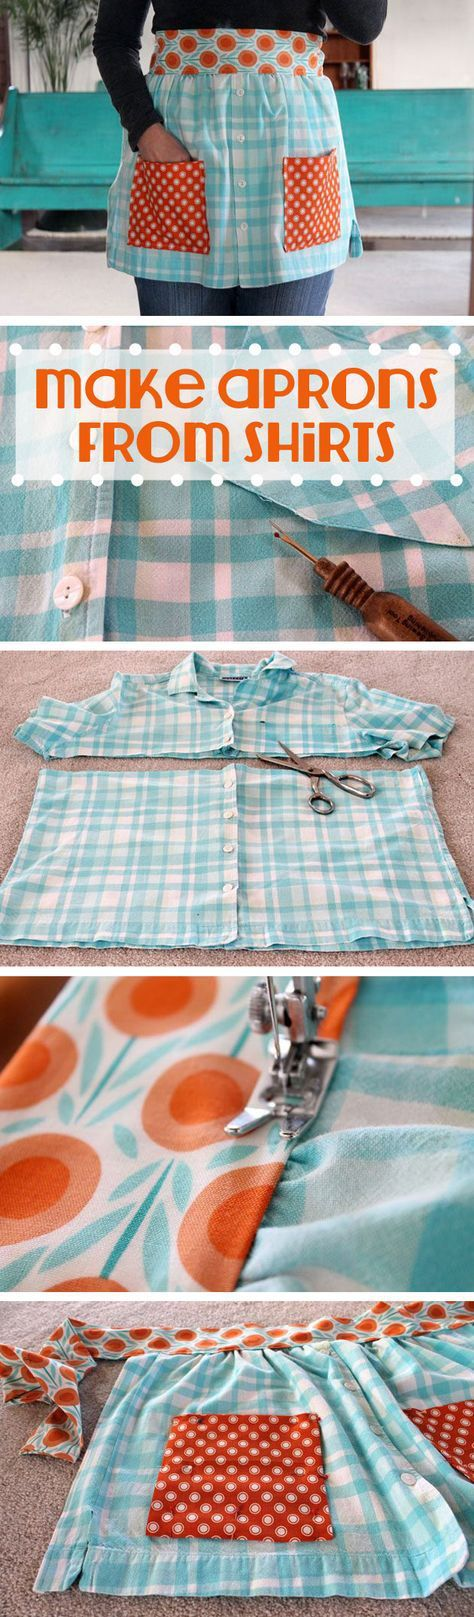 How to Make Aprons From Shirts 10